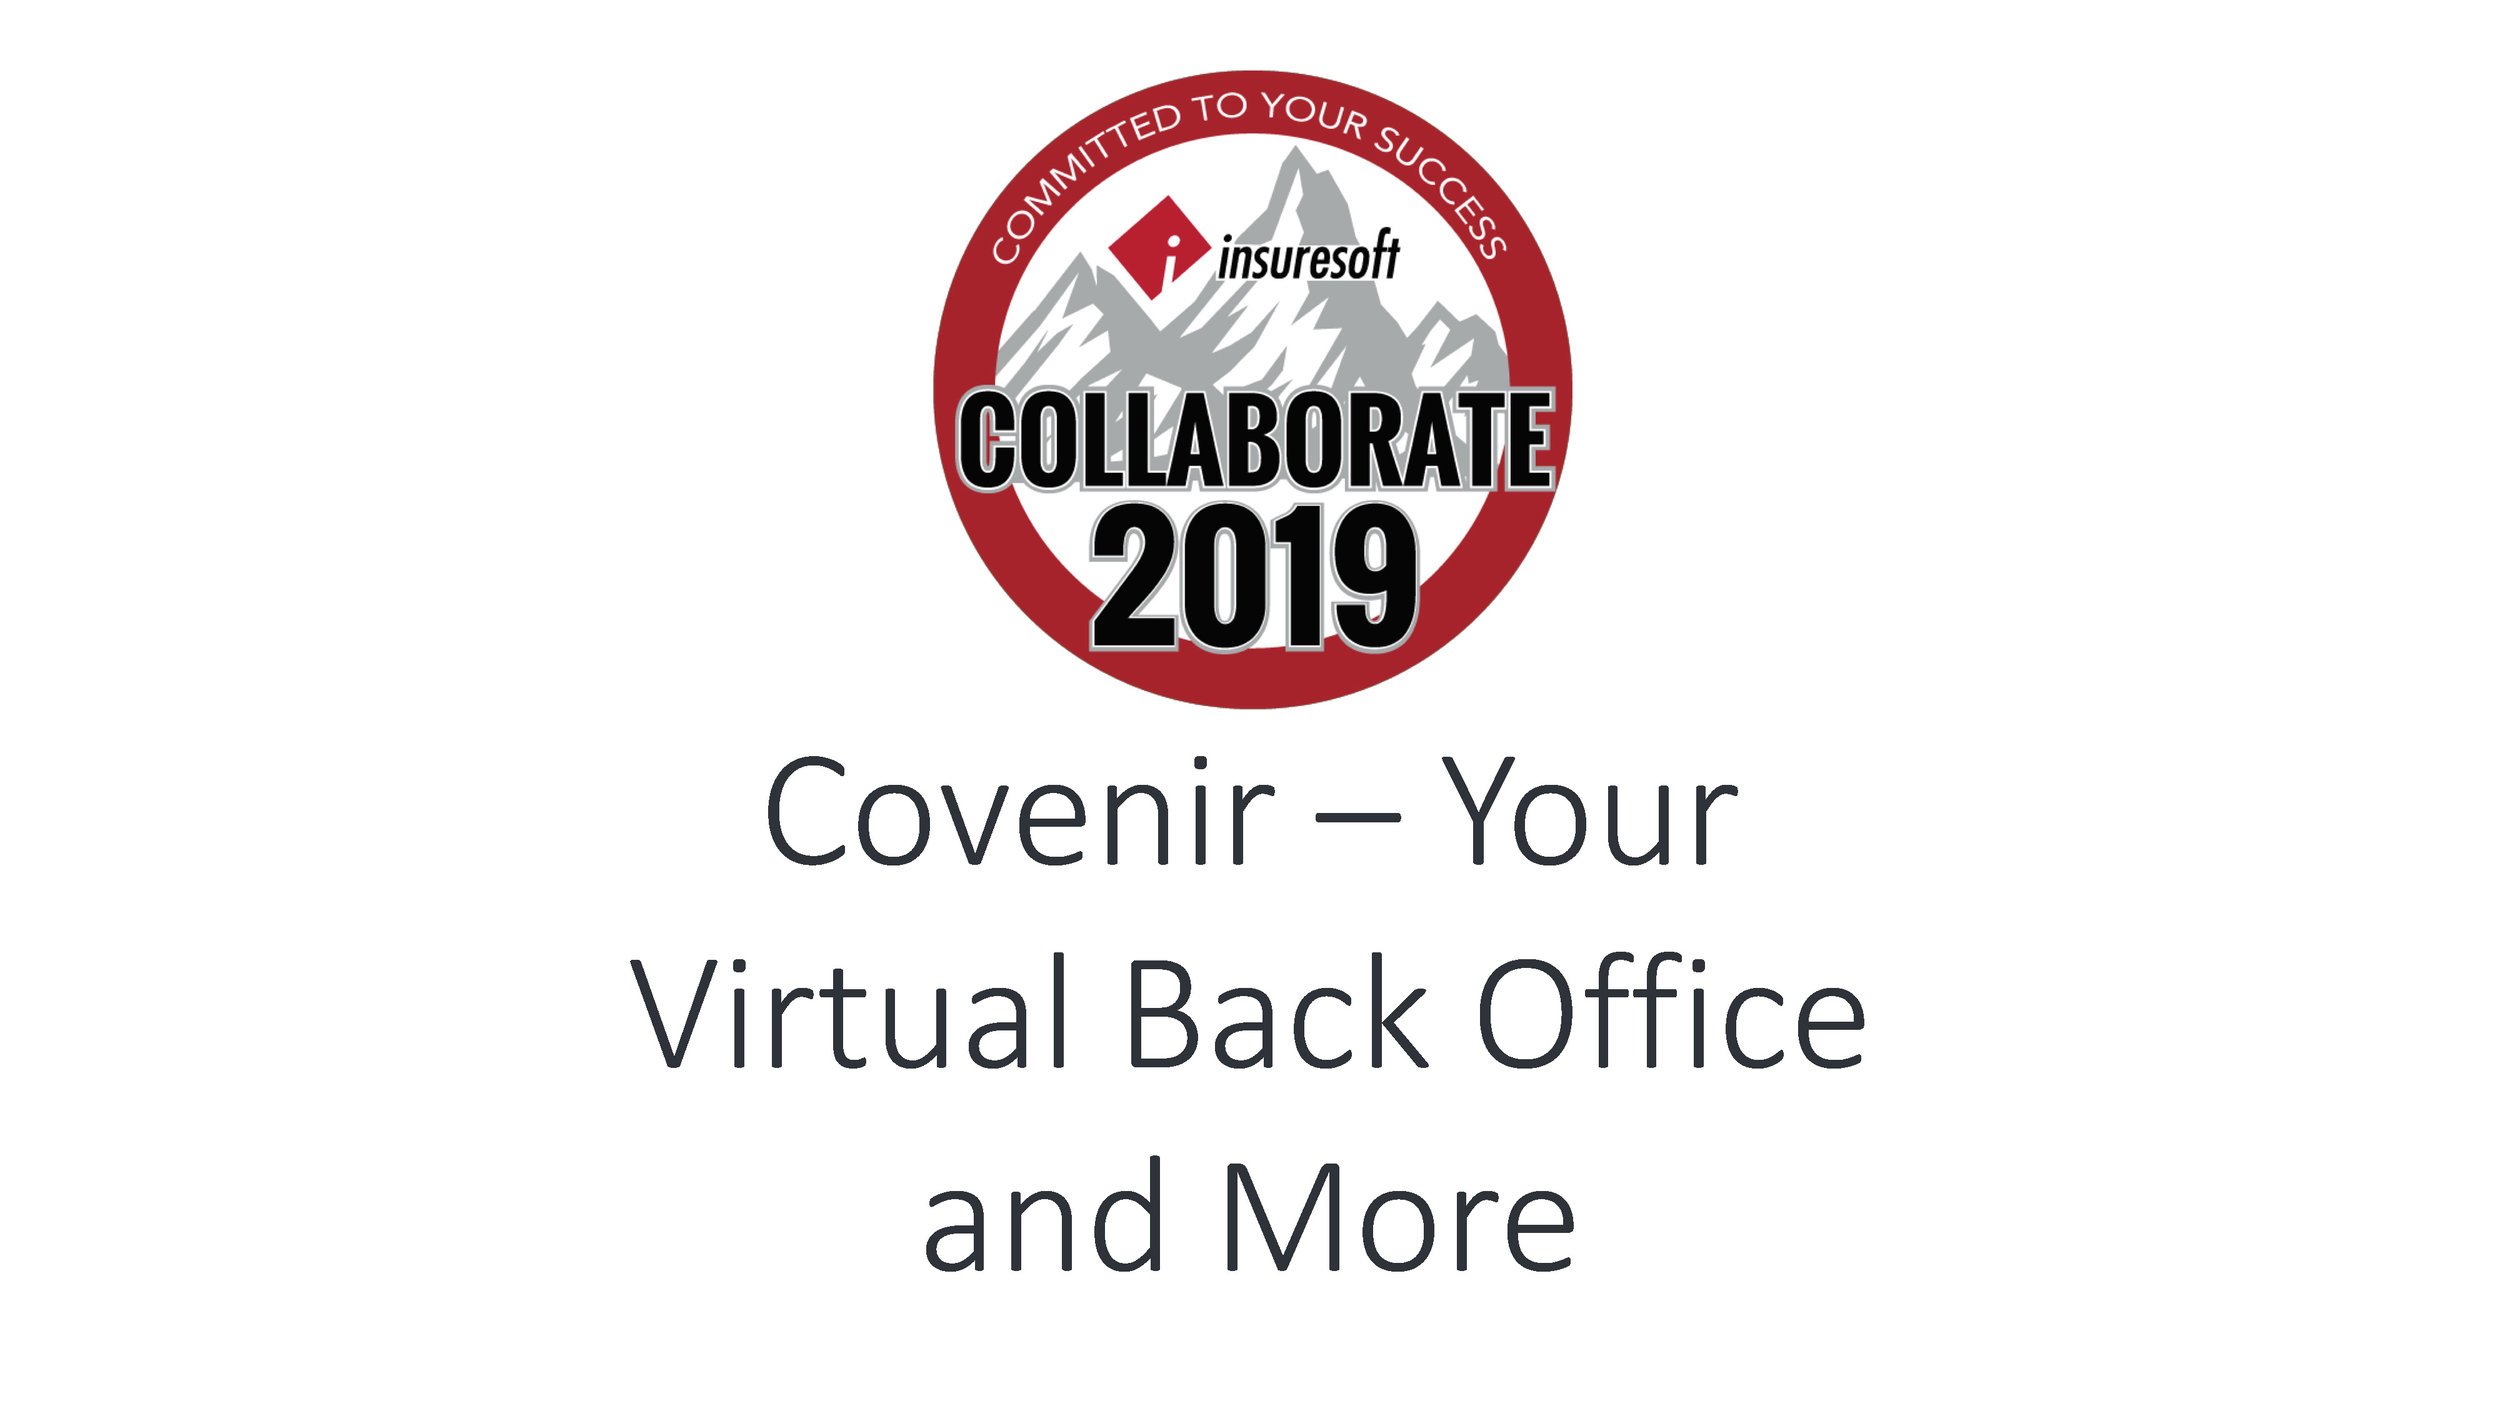 Your Virtual Backoffice and More - Covenir